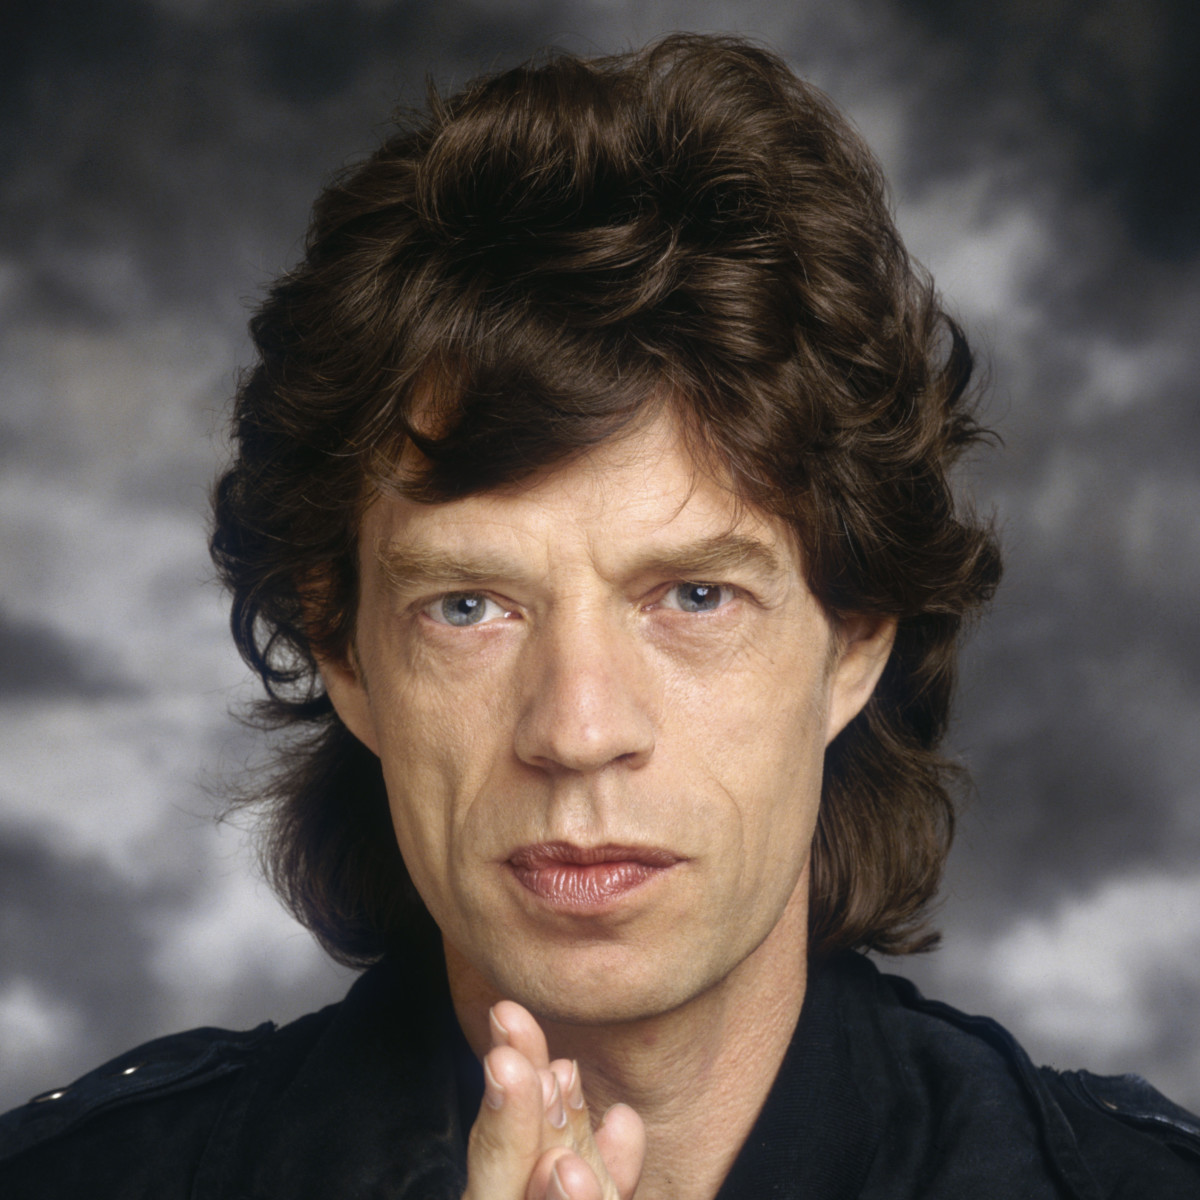 Mick jagger singer songwriter biography nvjuhfo Image collections